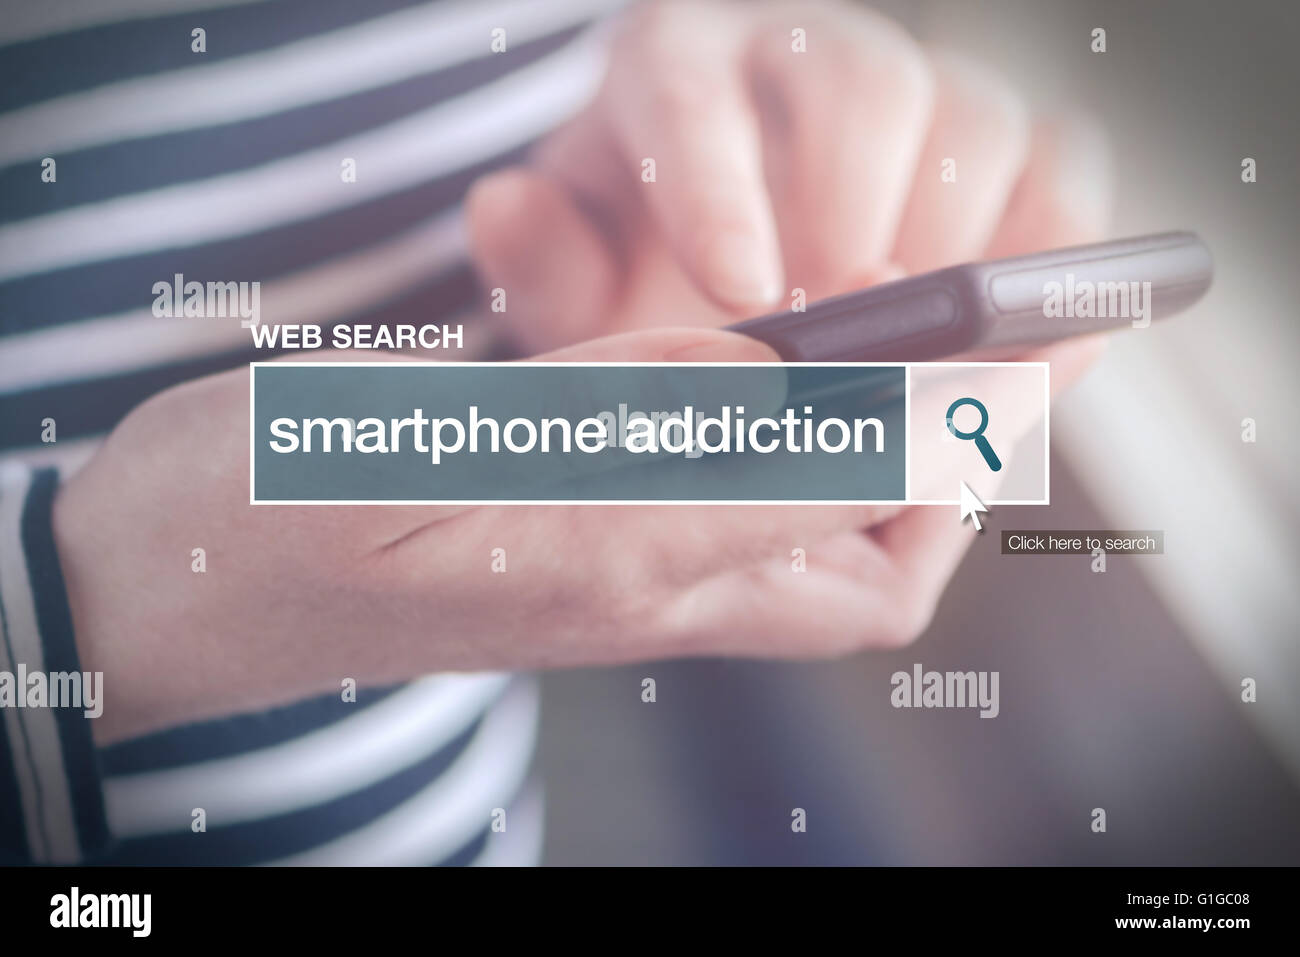 Web search bar glossary term - smartphone addiction definition in internet glossary. - Stock Image